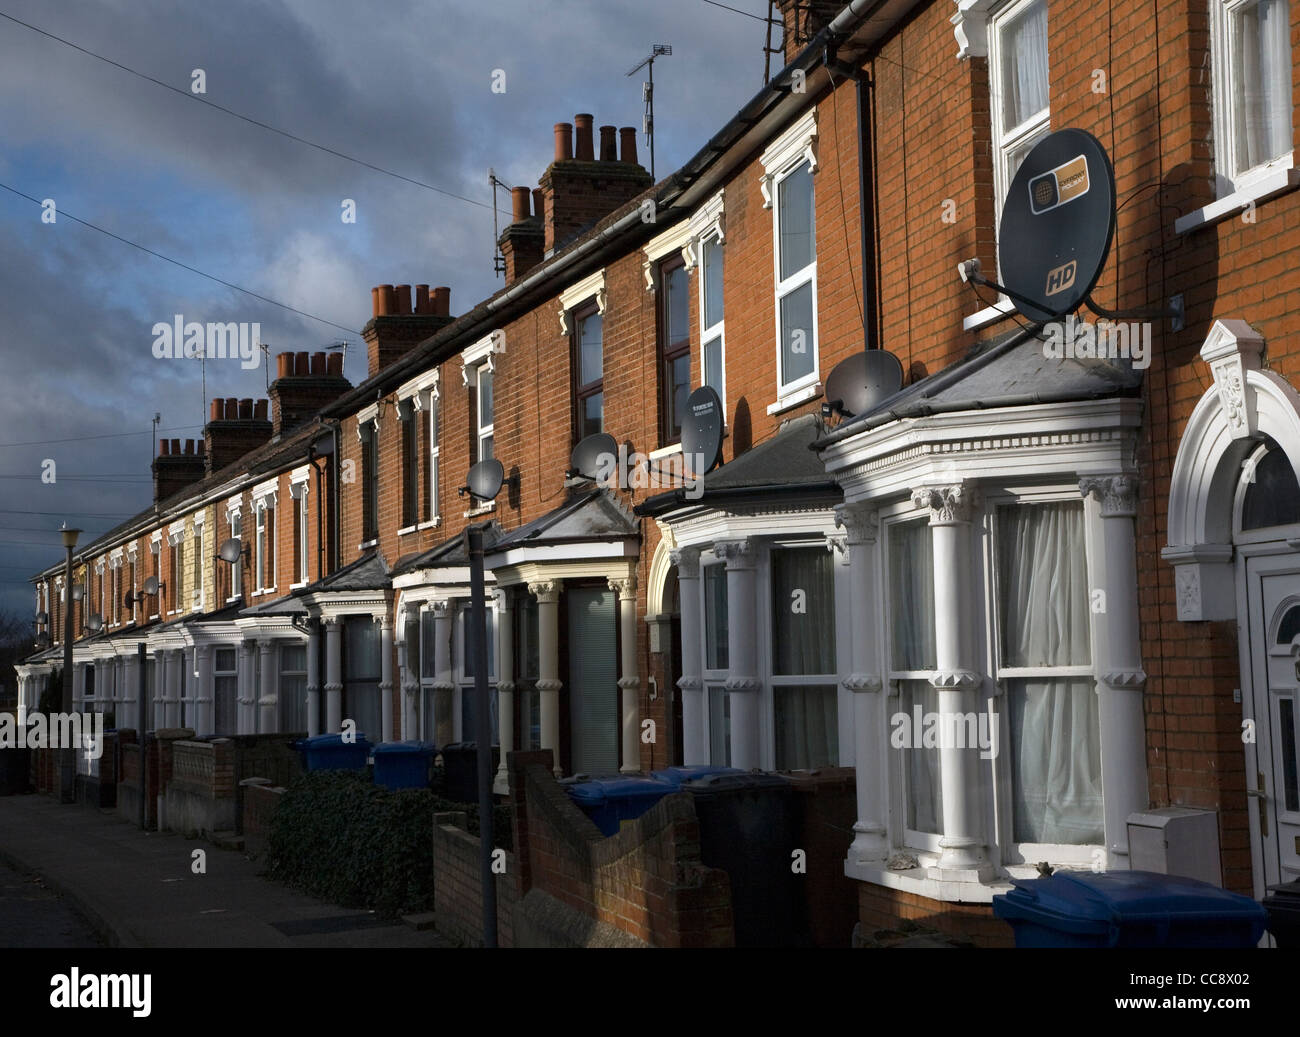 TV satellite dishes on row terraced housing Ipswich - Stock Image